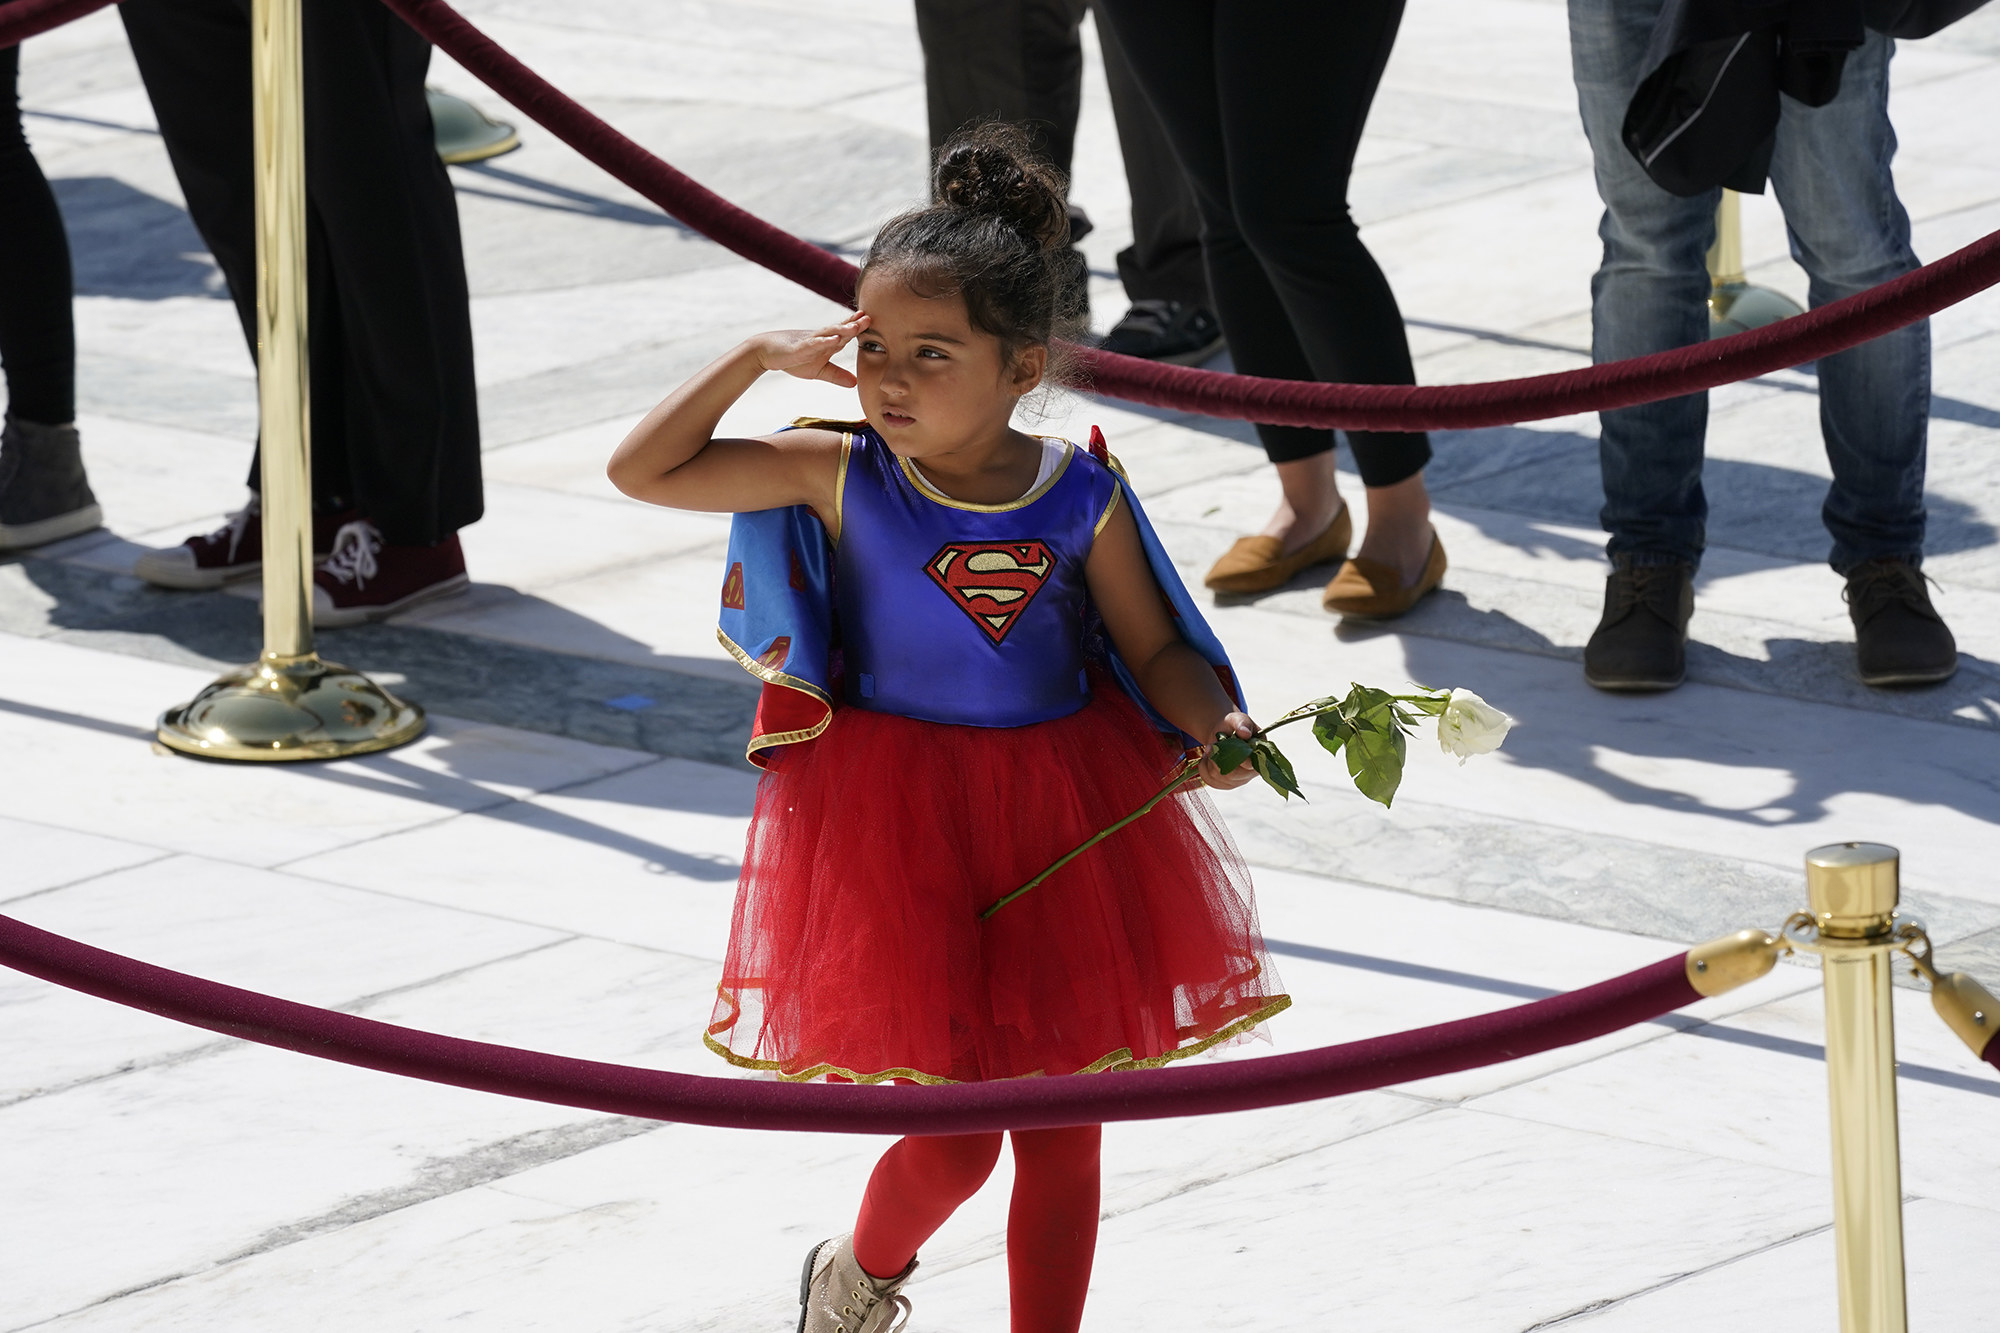 A girl dressed in a Supergirl costume pays her respects at the casket